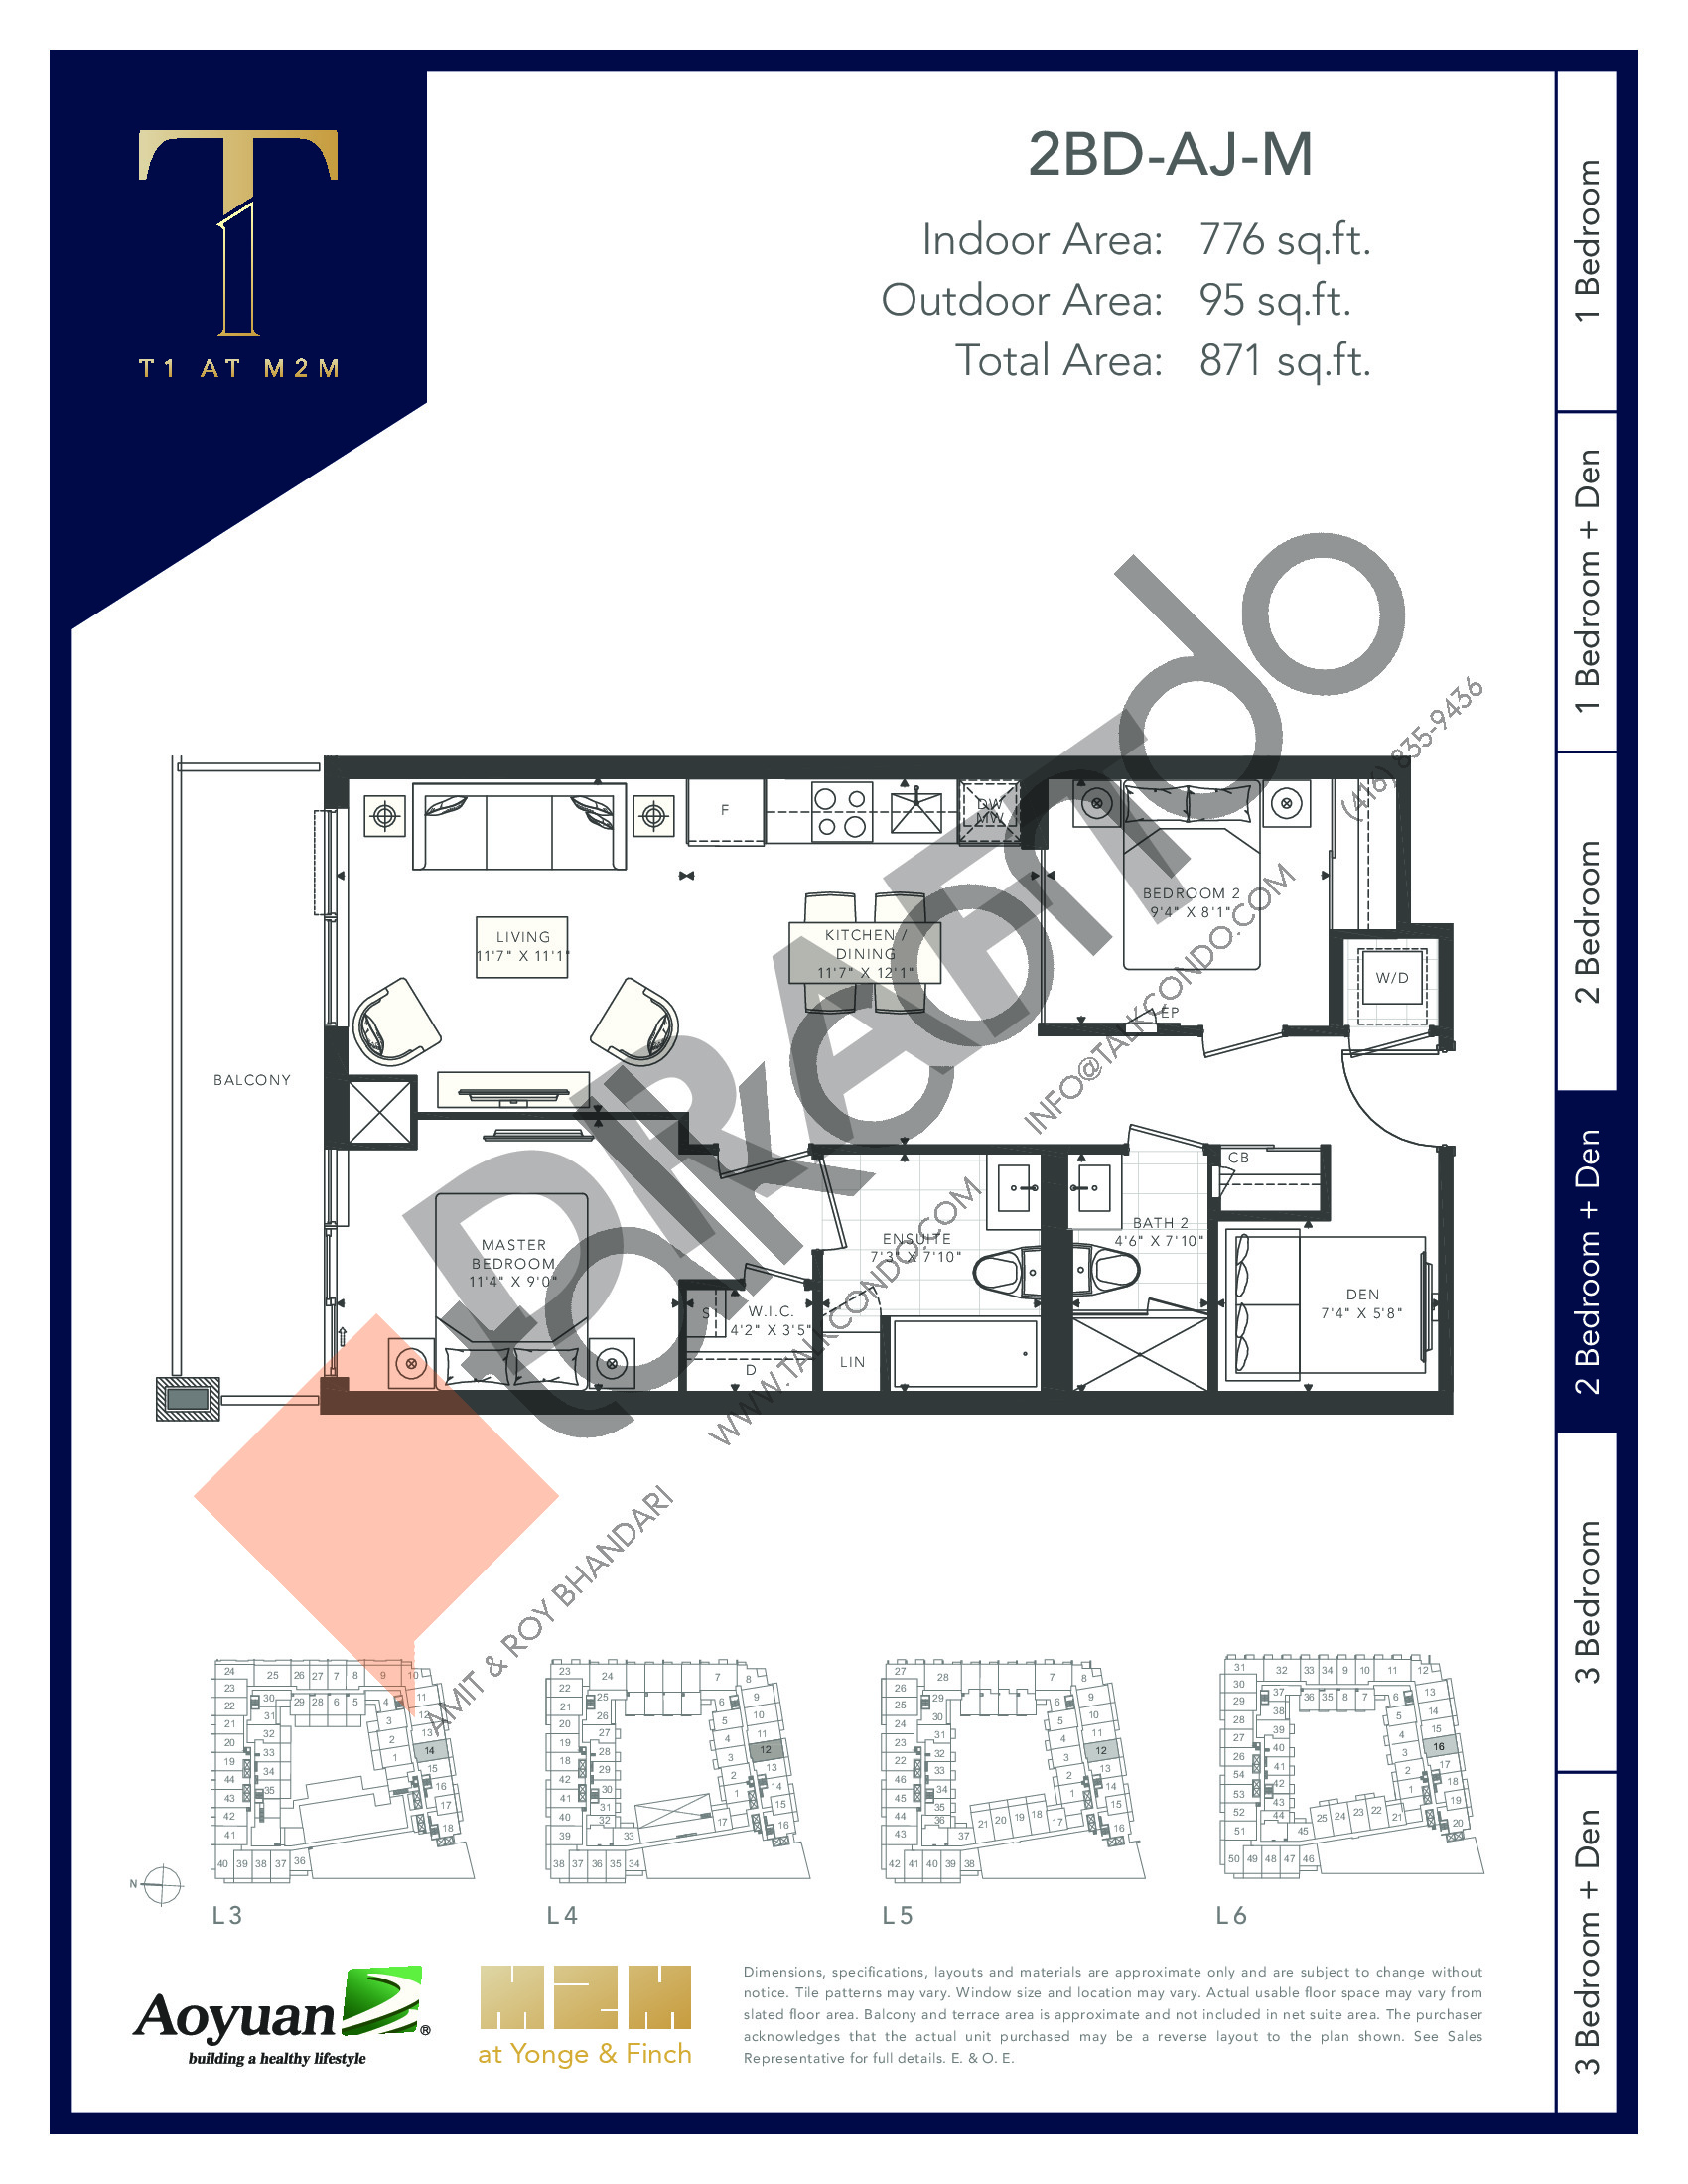 2BD-AJ-M (Podium) Floor Plan at T1 at M2M Condos - 776 sq.ft